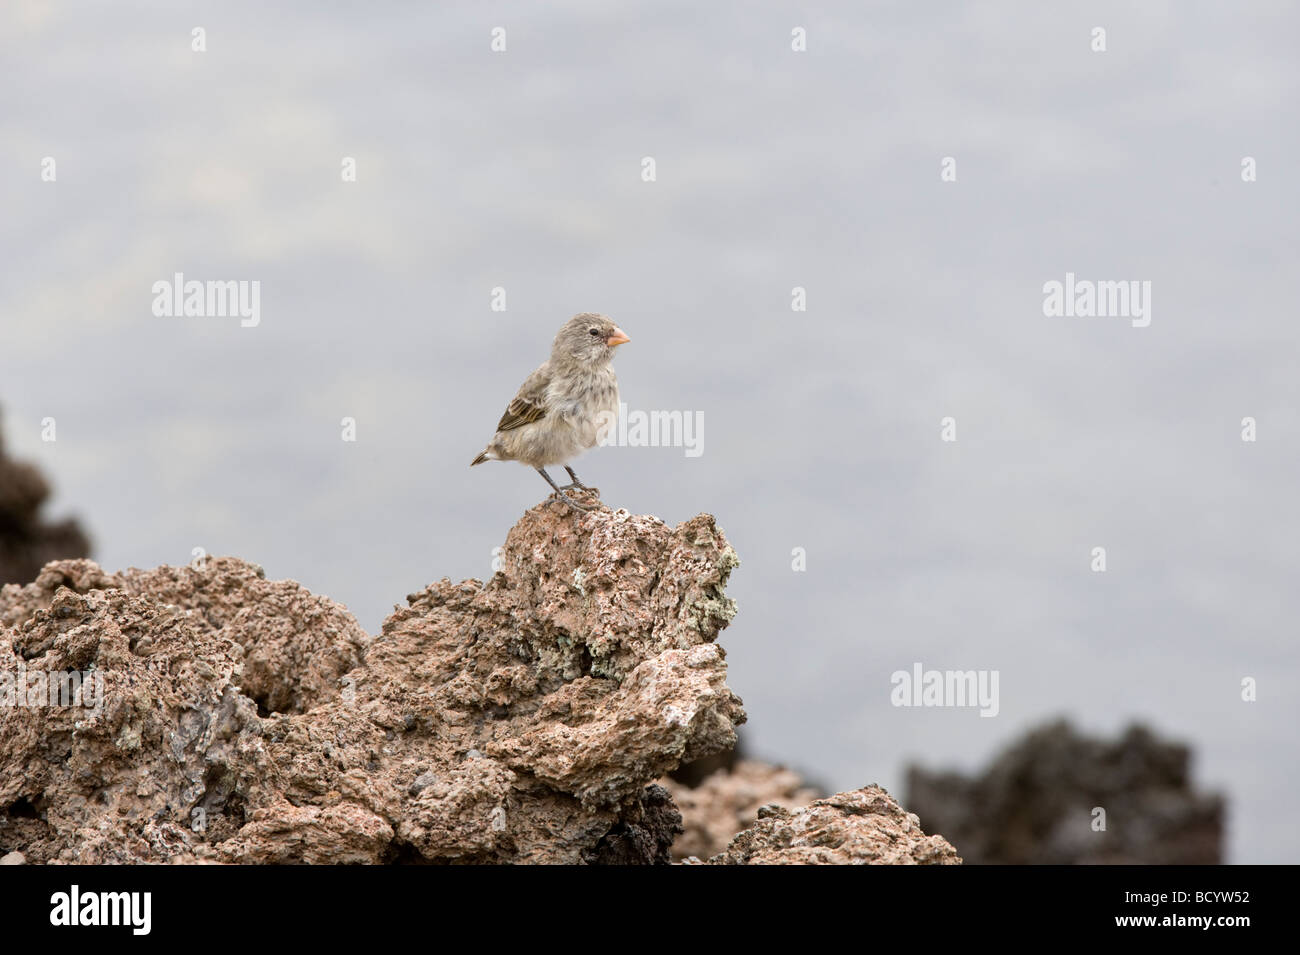 Medium Ground Finch (Geospiza fortis) immature perched on lava rock Punta Albemarle Isabela Galapagos Ecuador Pacific - Stock Image